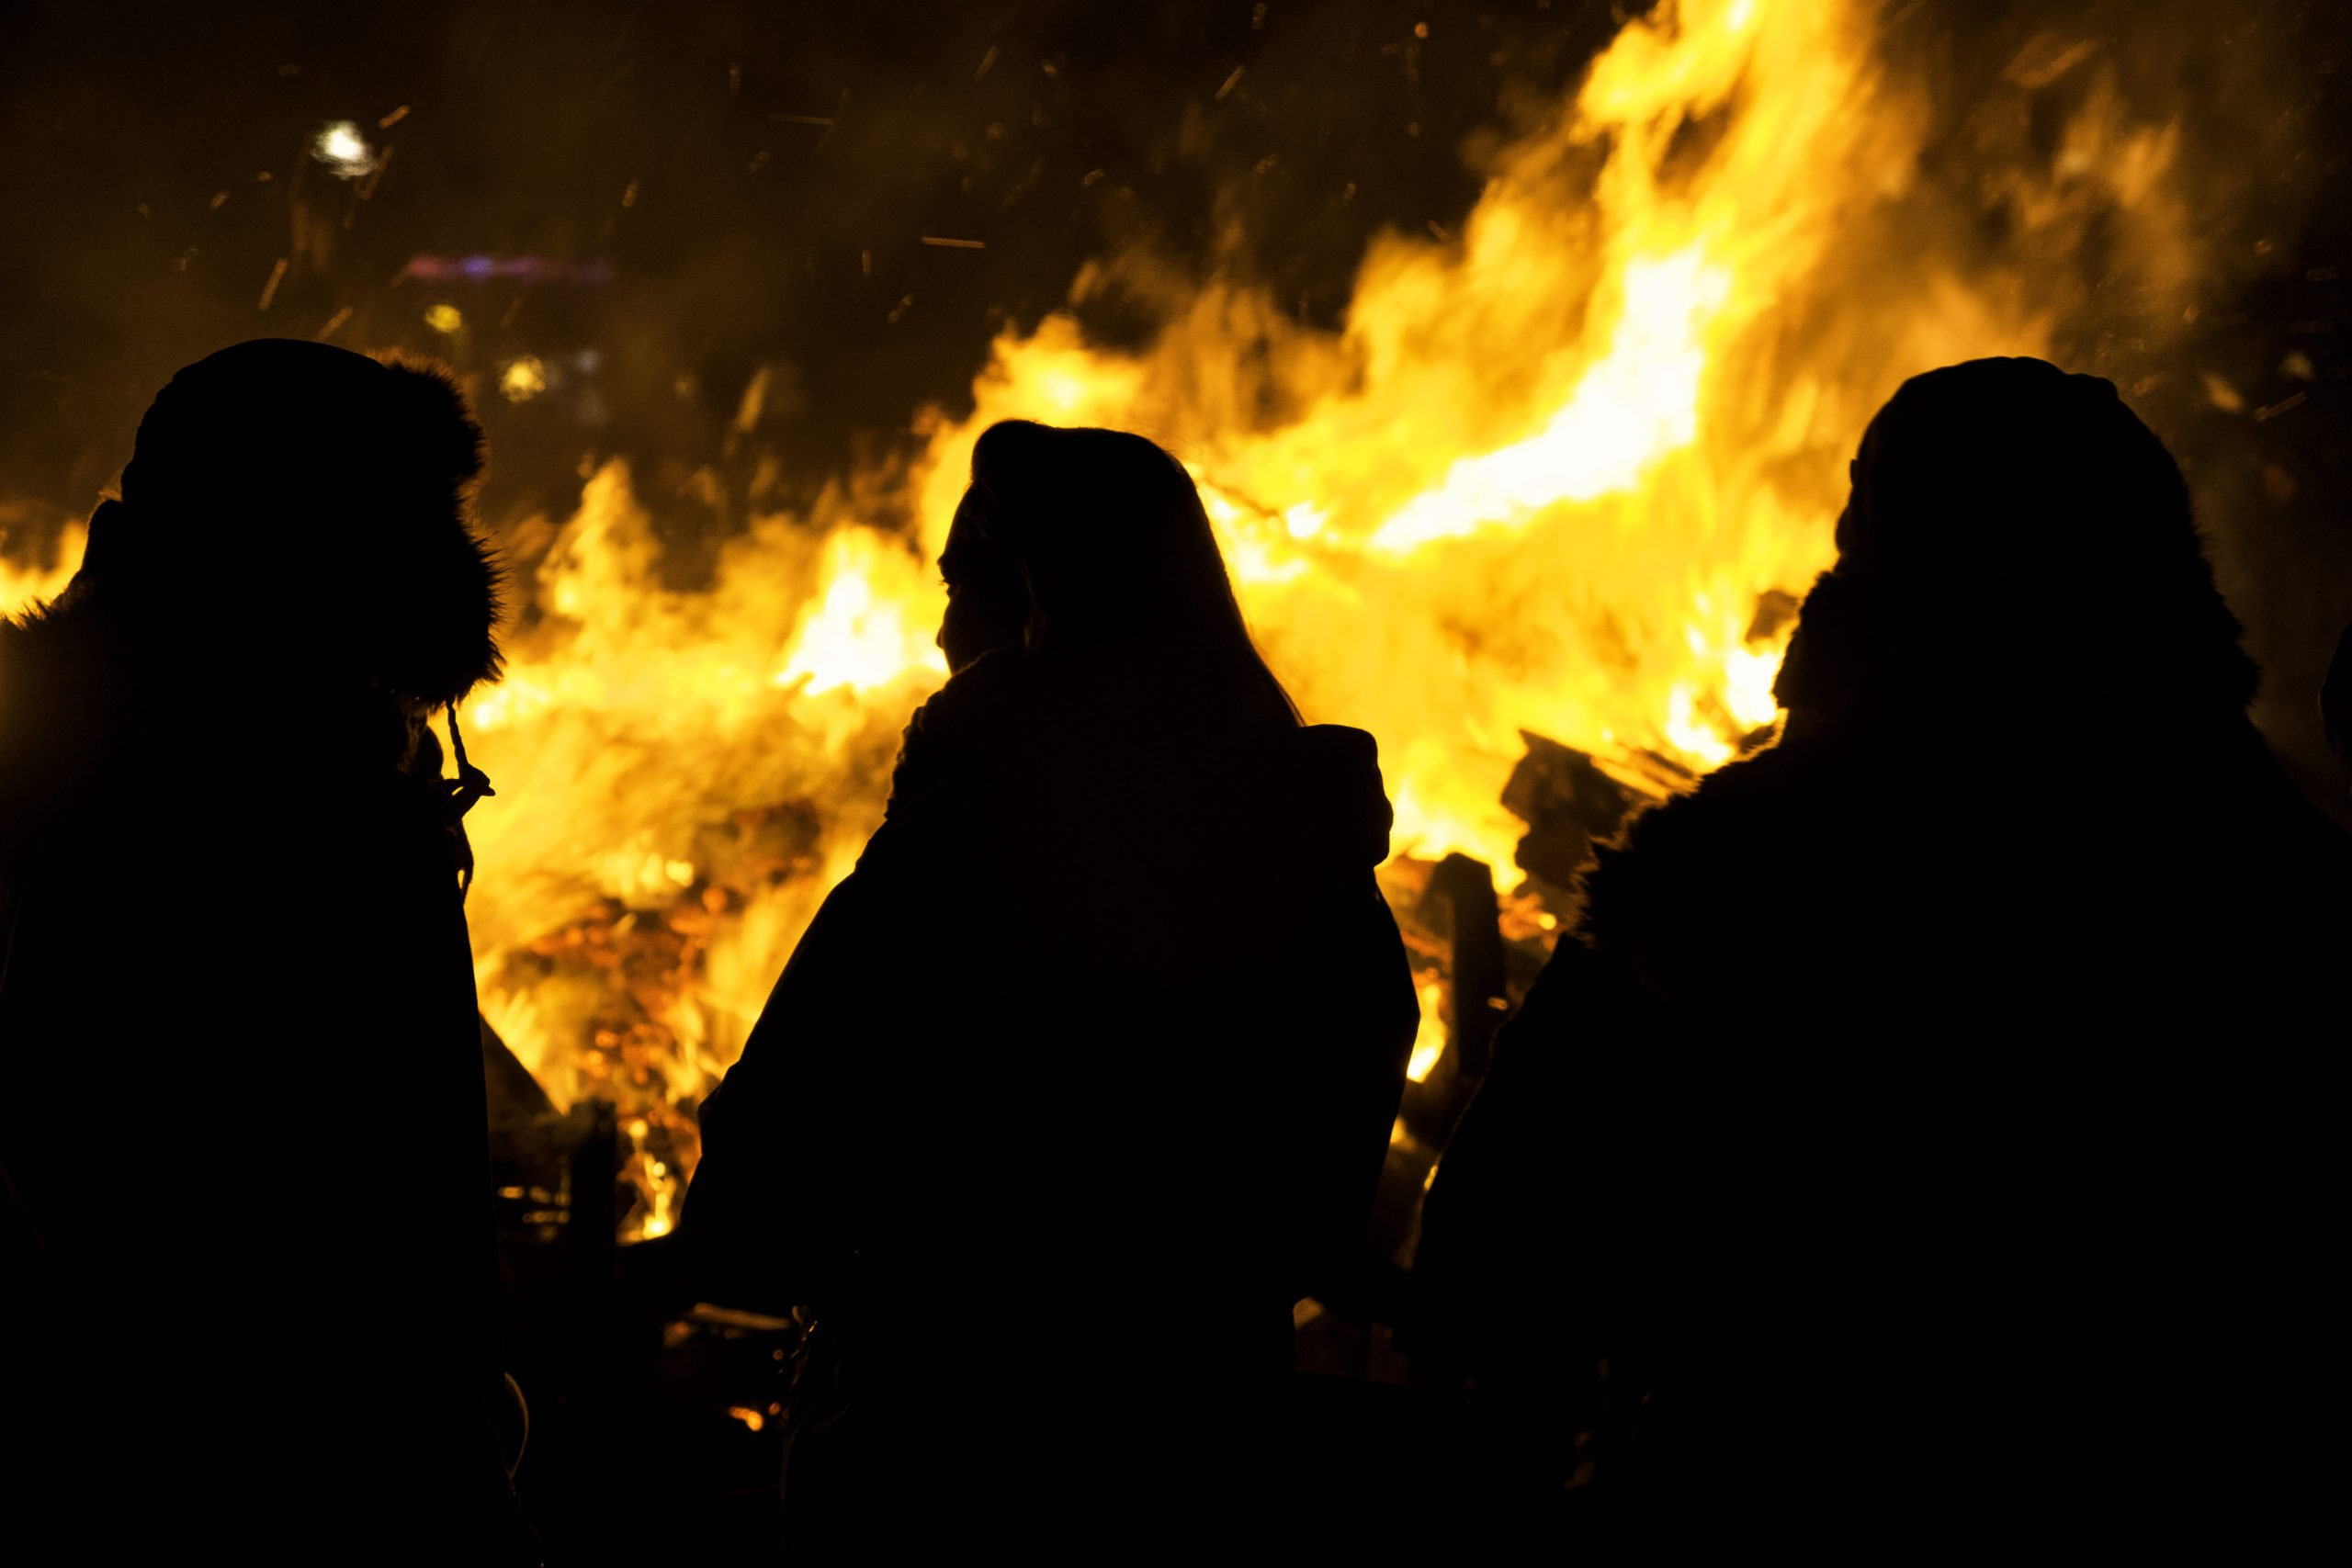 Traditional Icelandic Holiday Experience In Our New Year's Eve Bonfire Tour